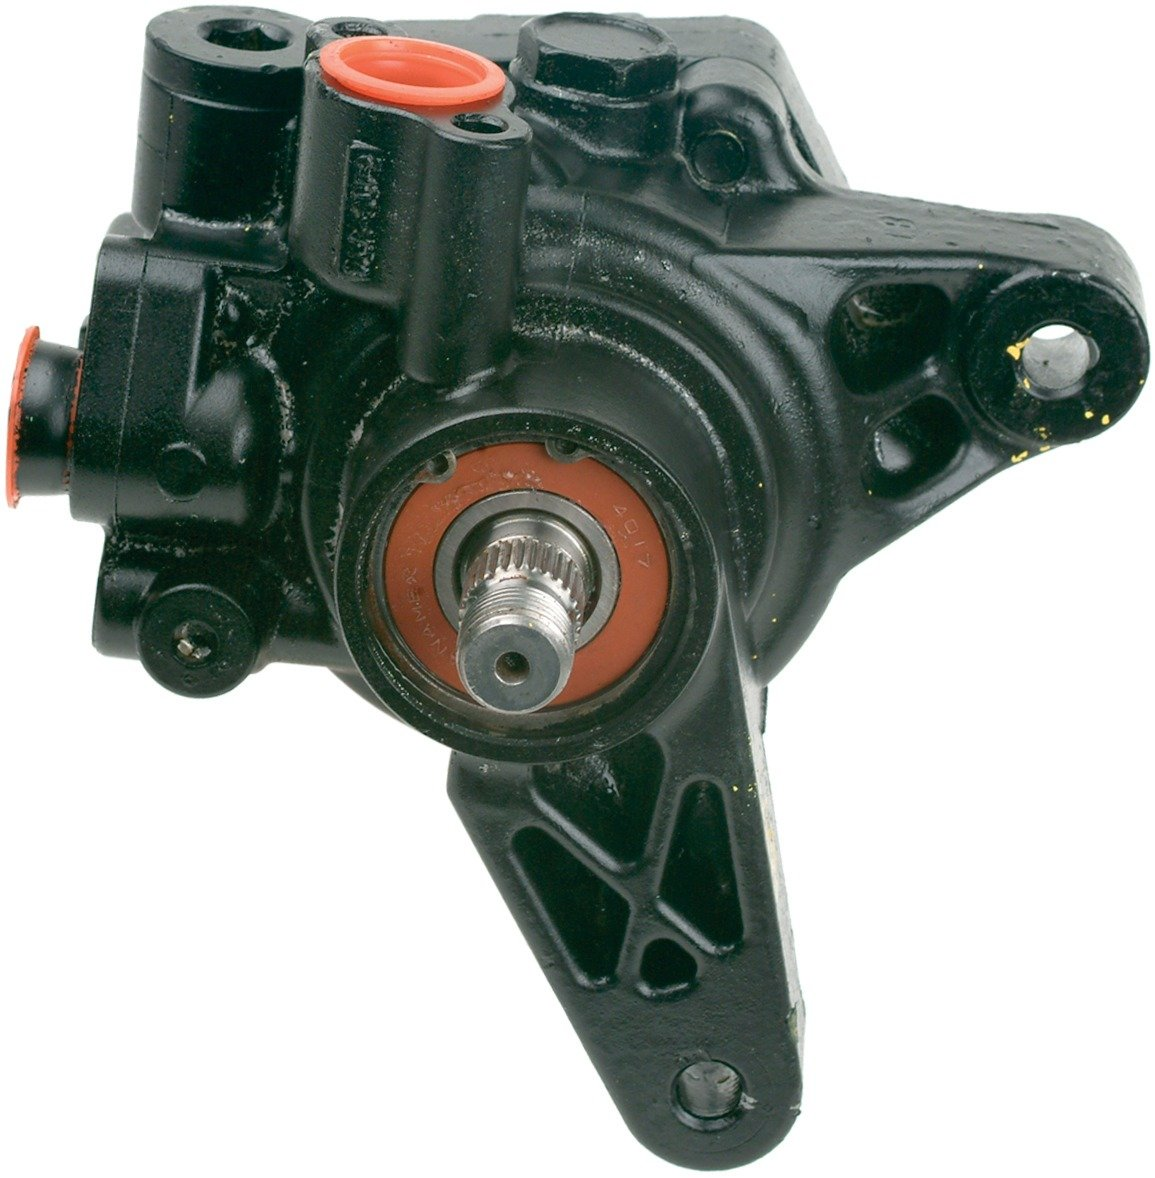 Cardone 21-5267 Remanufactured Import Power Steering Pump A1 Cardone